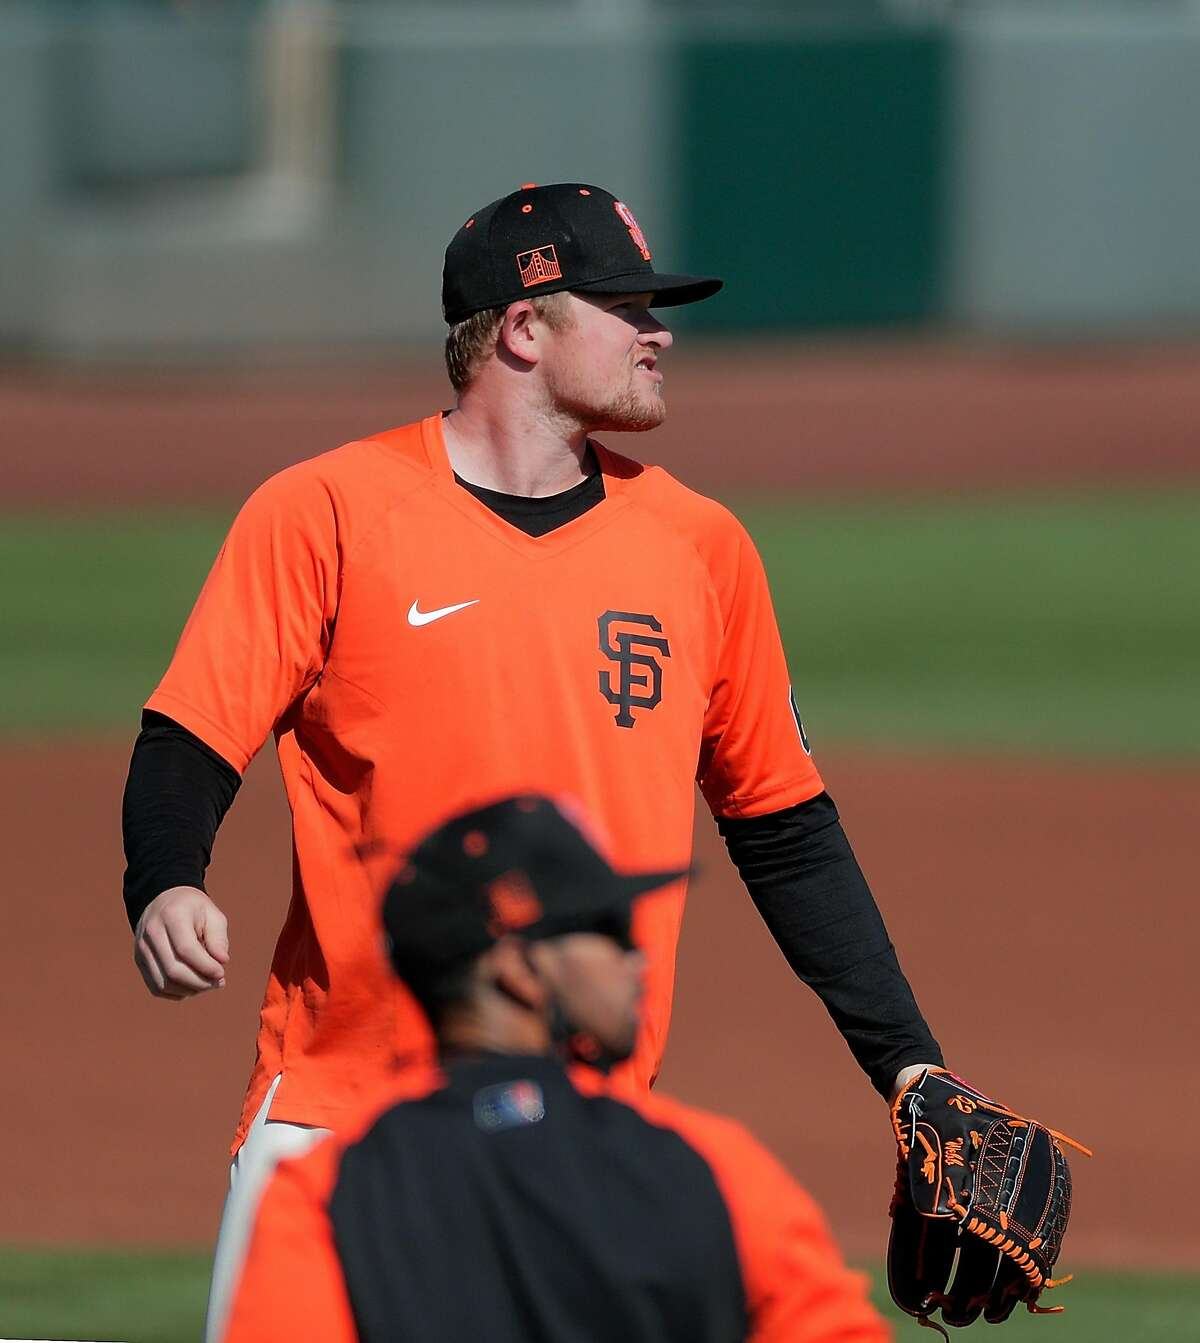 Logan Webb (62) during infield drills as the San Francisco Giants worked out at Scottsdale Stadium in Scottsdale, Ariz., on Thursday, March 4, 2021.